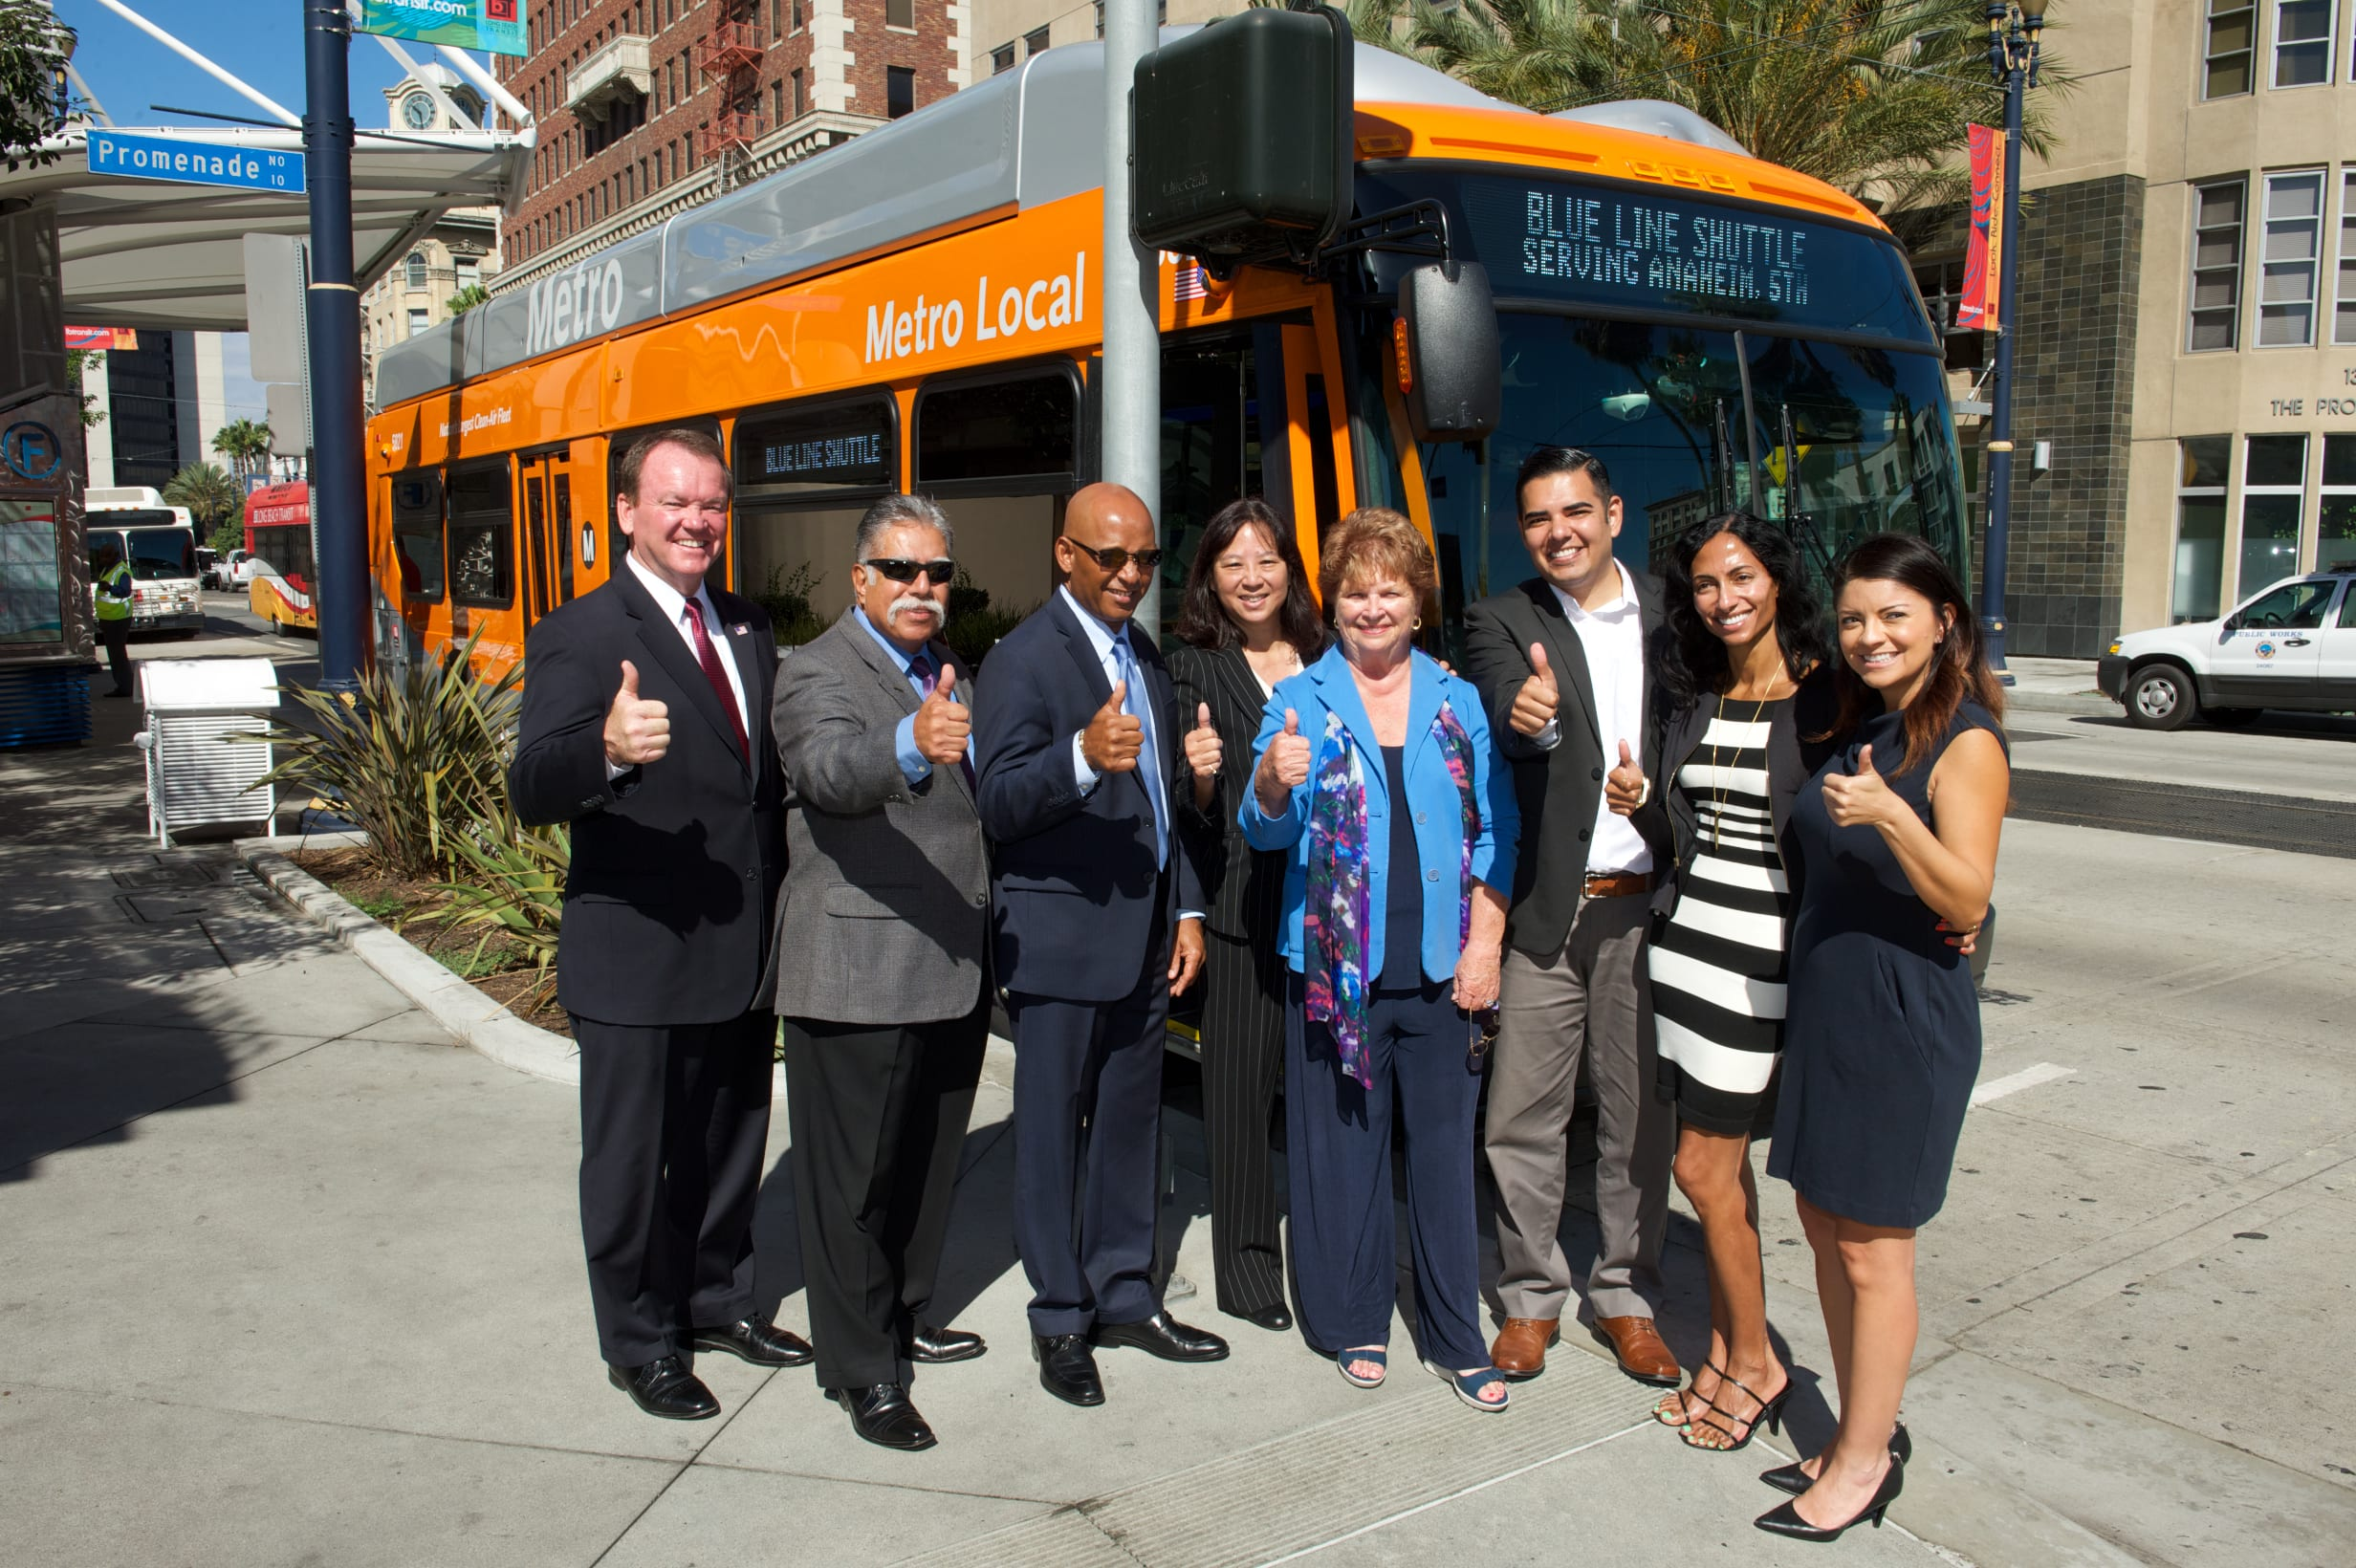 City and elected officials at this morning's media event in downtown Long Beach. From left, Long Beach Police Chief Jim McDonnell, Councilman Roberto Uranga, Long Beach Transit CEO Kenneth McDonald, Metro Deputy CEO Lindy Lee, Metro Board Member Diane DuBois, Long Beach Mayor Robert Garcia, Long Beach Vice Mayor Suja Lowenthal and Councilwoman Lena Gonzalez.